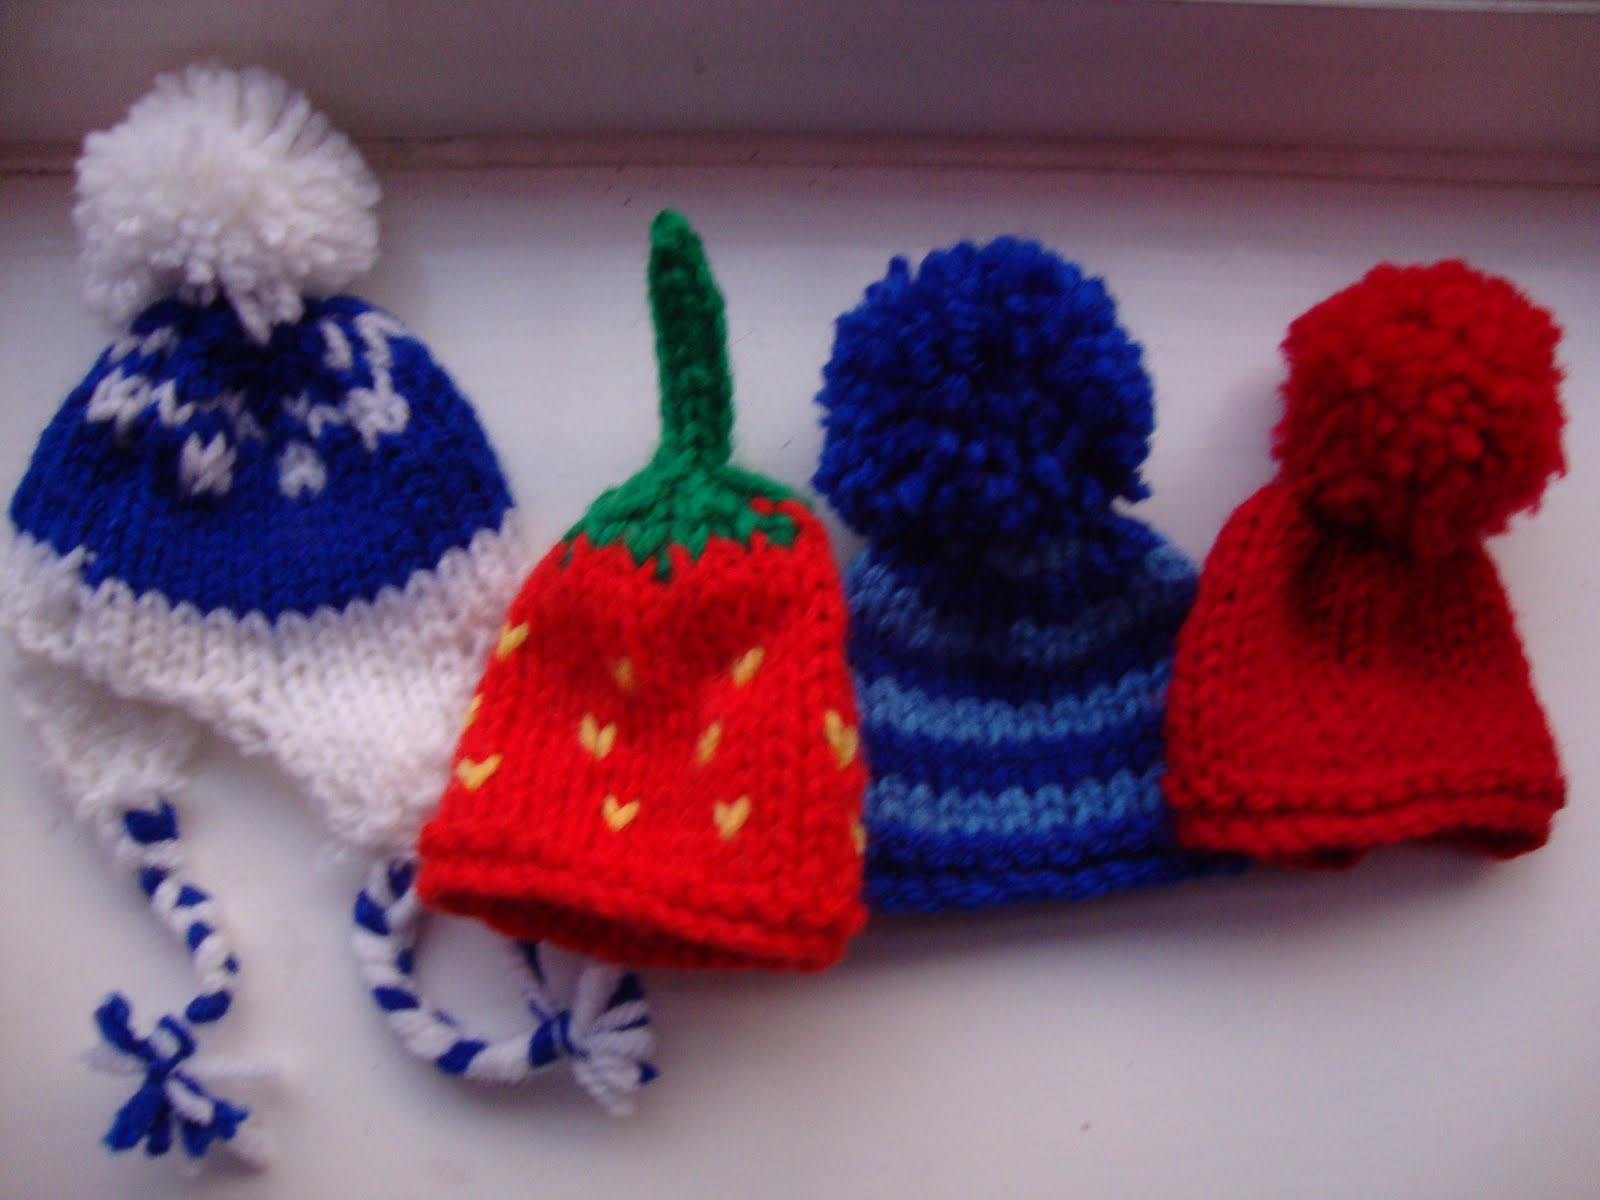 Christmas Crafts Ideas To Sell : Christmas craft ideas to make and sell search results